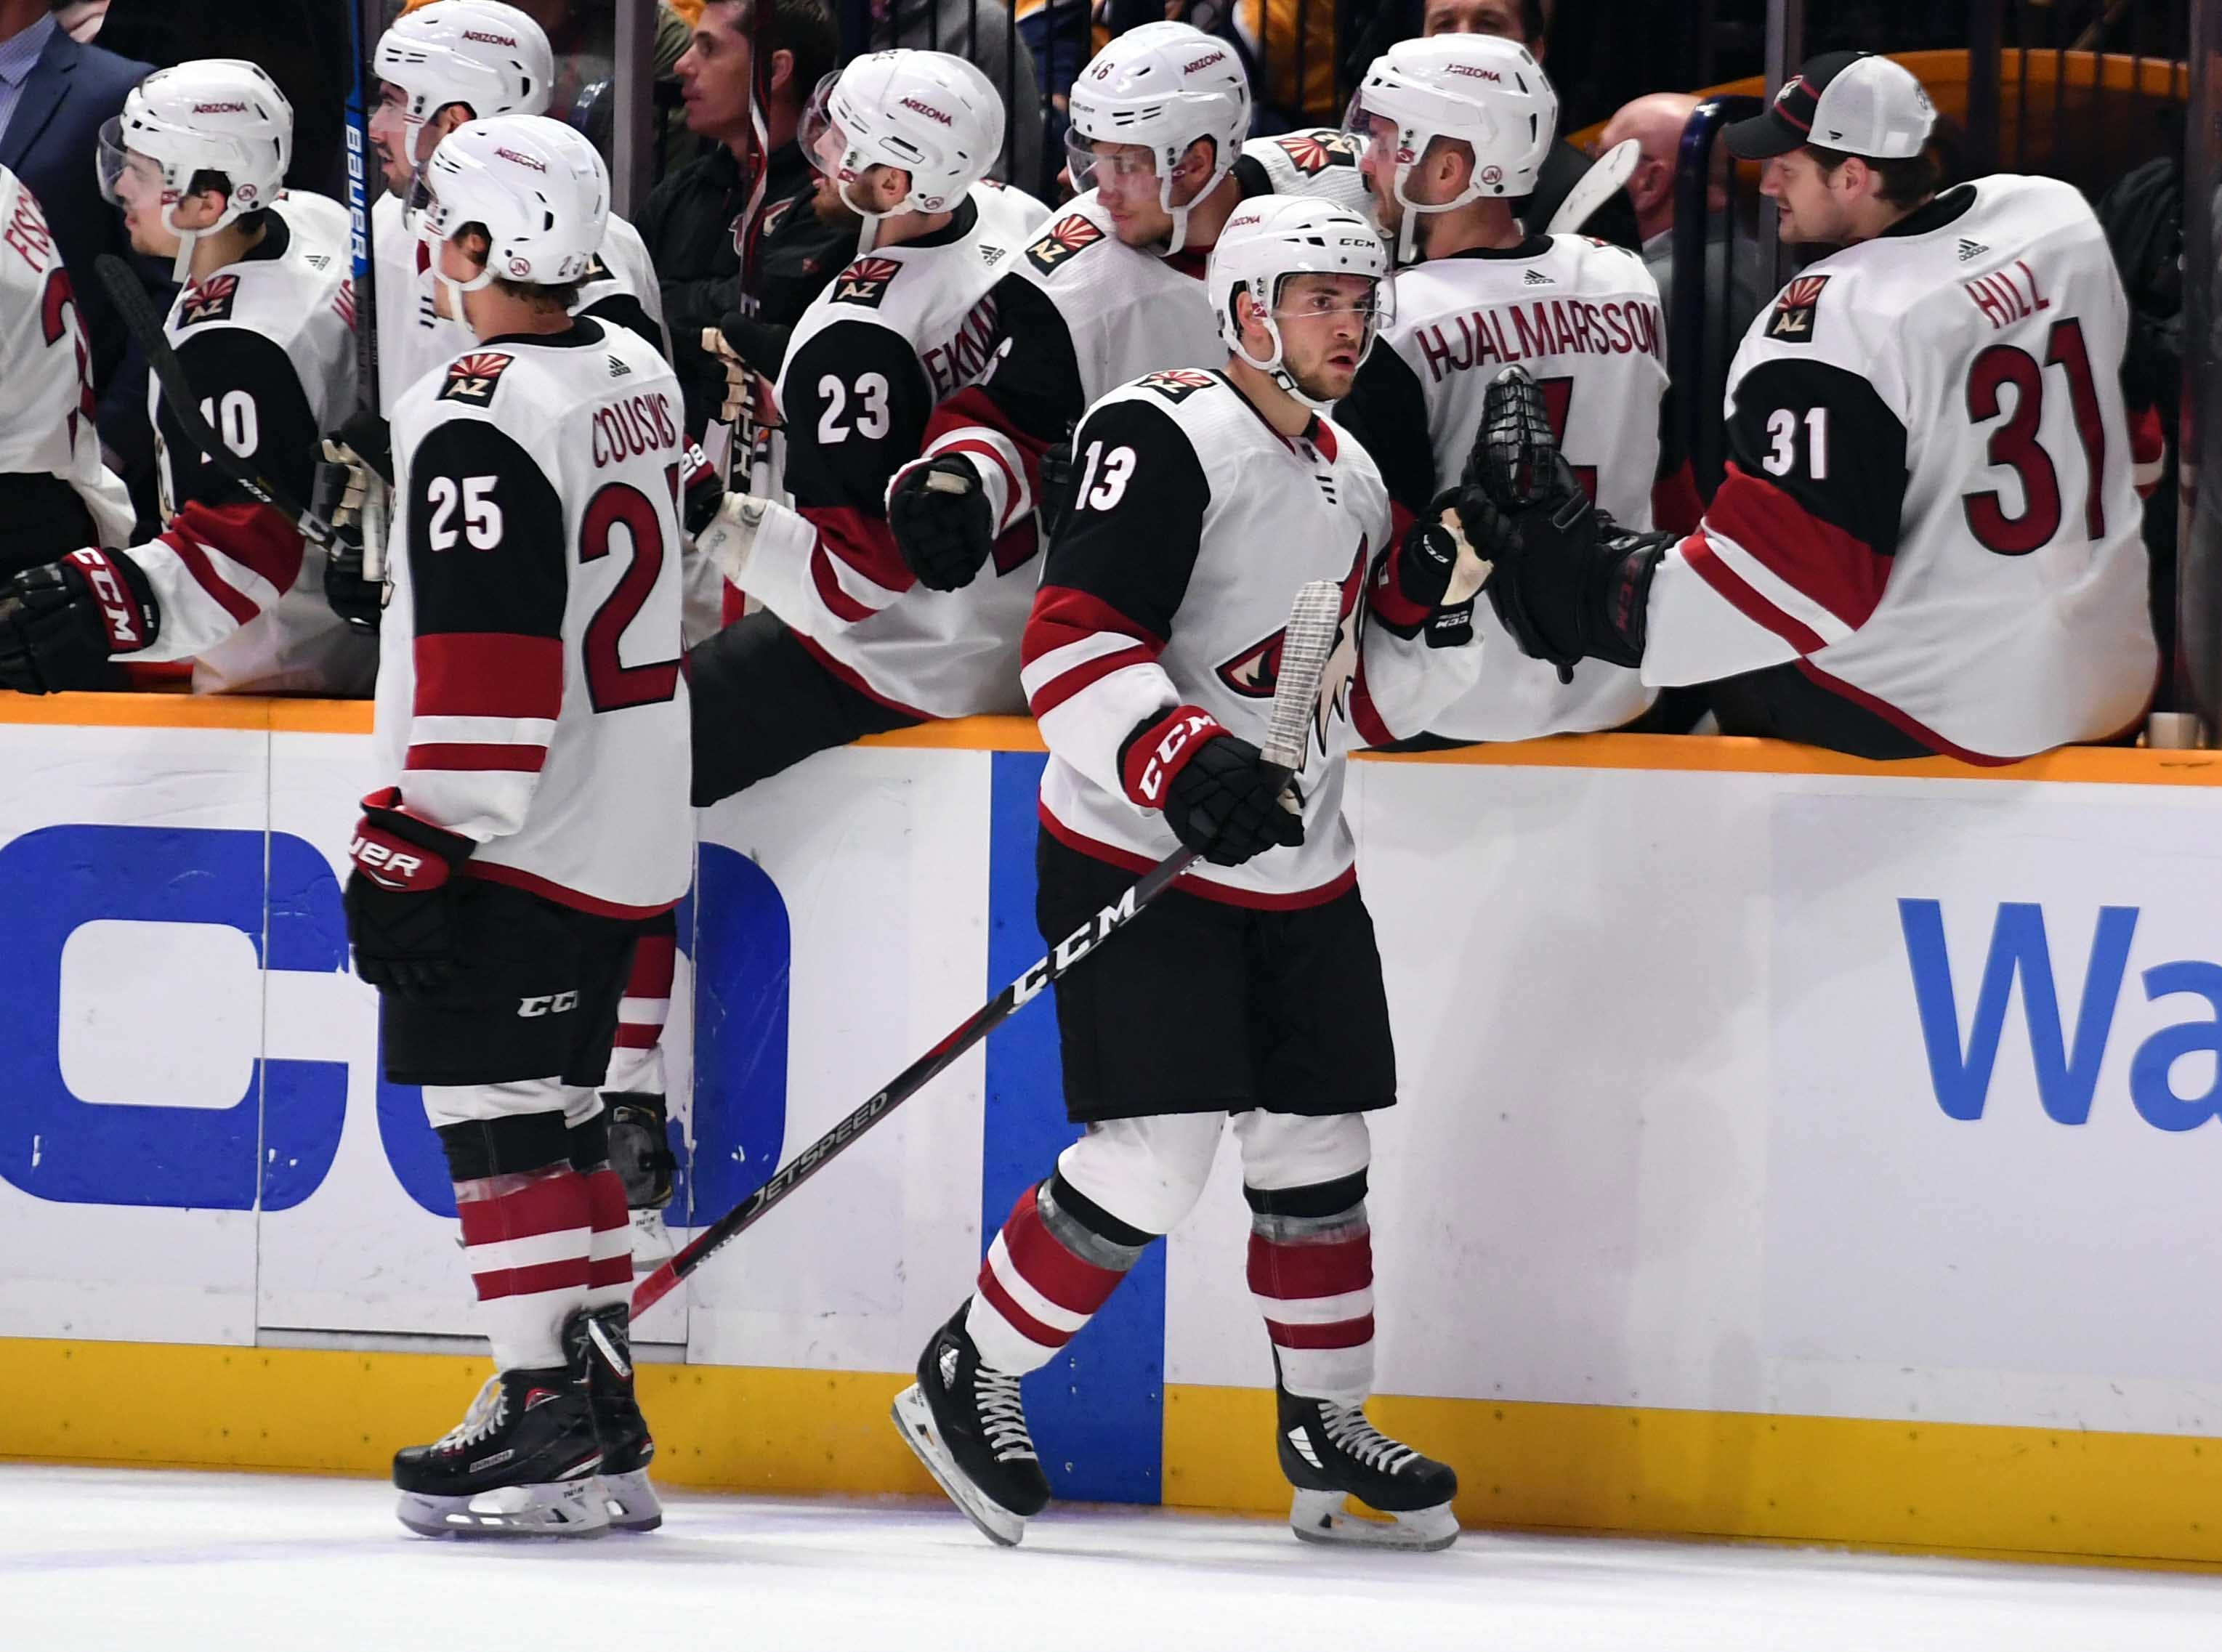 Feb 5, 2019; Nashville, TN, USA; Arizona Coyotes center Vinnie Hinostroza (13) is congratulated by teammates after a goal during the first period against the Nashville Predators at Bridgestone Arena. Mandatory Credit: Christopher Hanewinckel-USA TODAY Sports